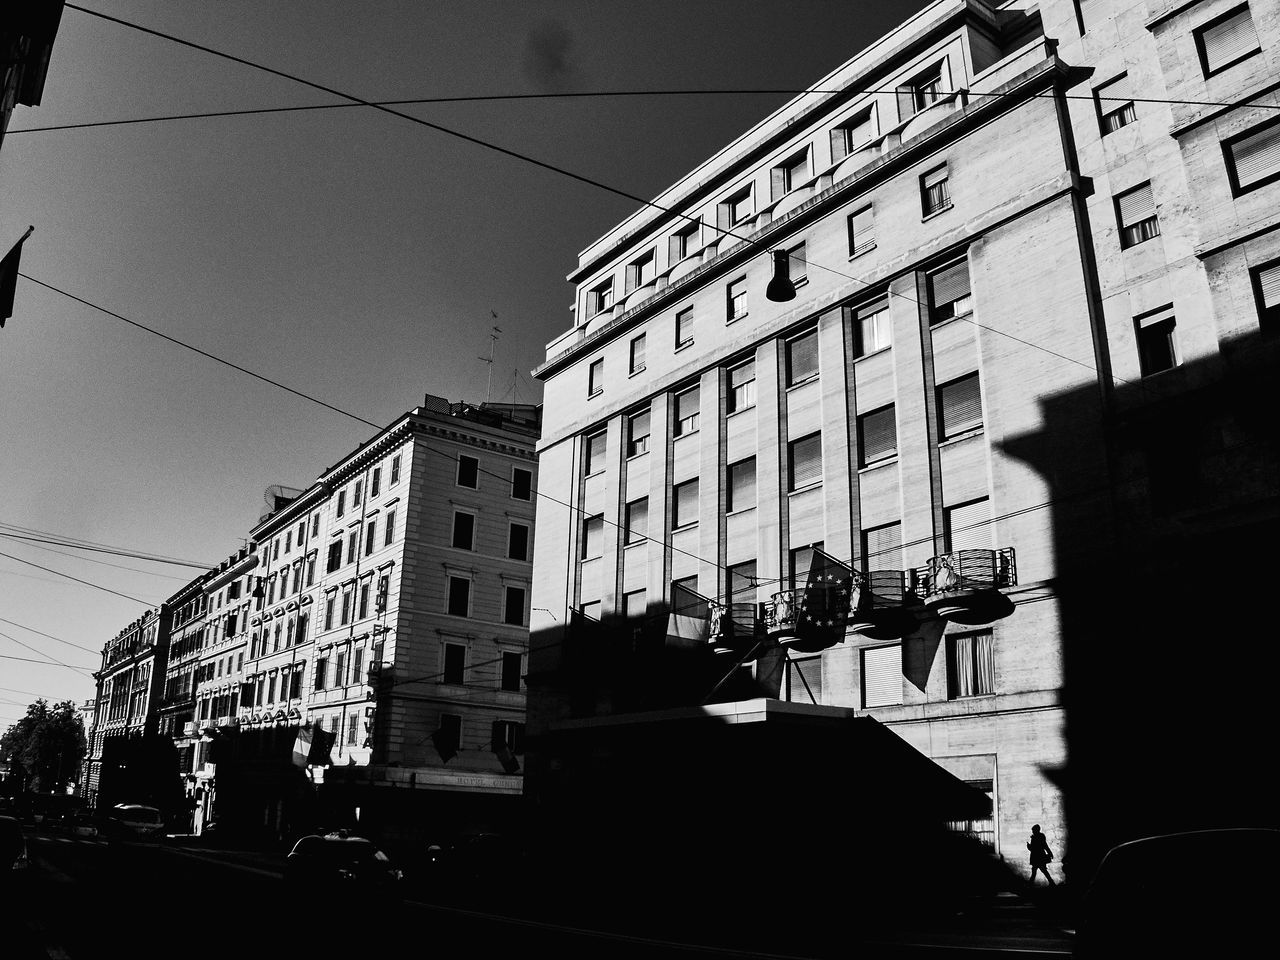 Rome 2016-17 Costangelo Pacilio www.costangelo.com CostangeloP on FB, Instagram Architecture Blackandwhite Building Exterior Built Structure City Colosseo Colosseum Compact Digital Camera Contrast Costangelo Day Italy Metafisica No People Outdoors People Residential Building Roma Rome Silhouette Sky Streetphotography Surreal Surrealism Transportation